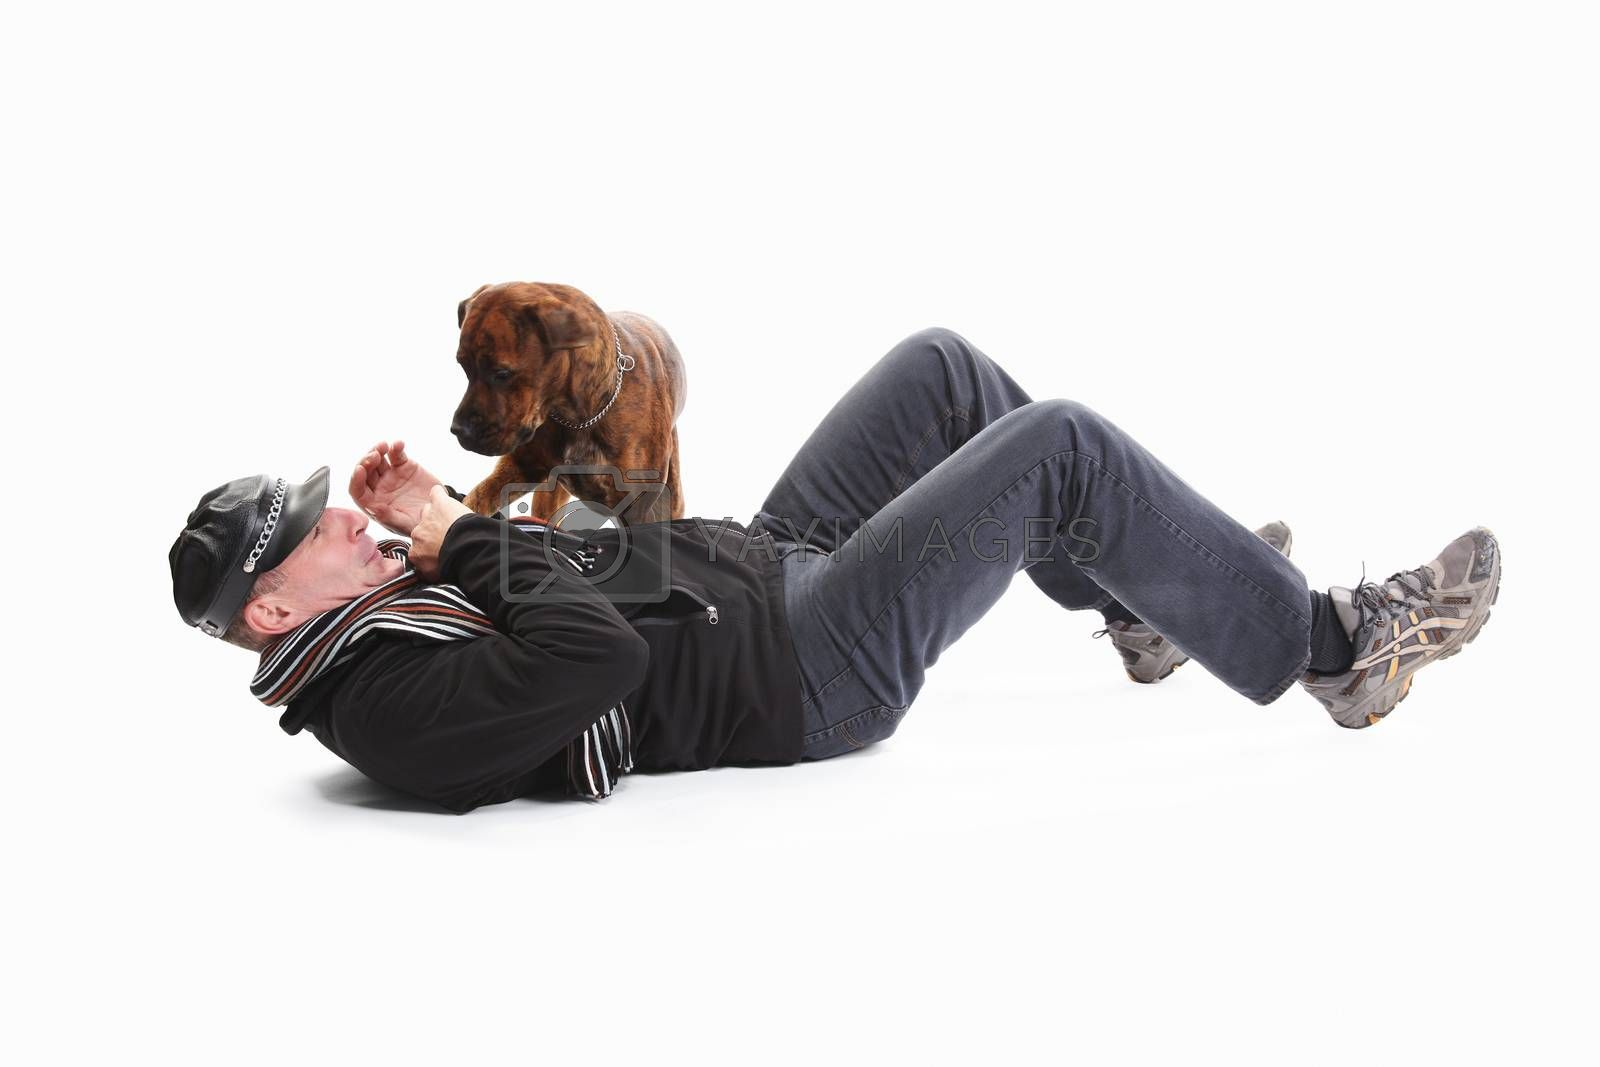 Mature Man Lying On Back With Dog Over White Background